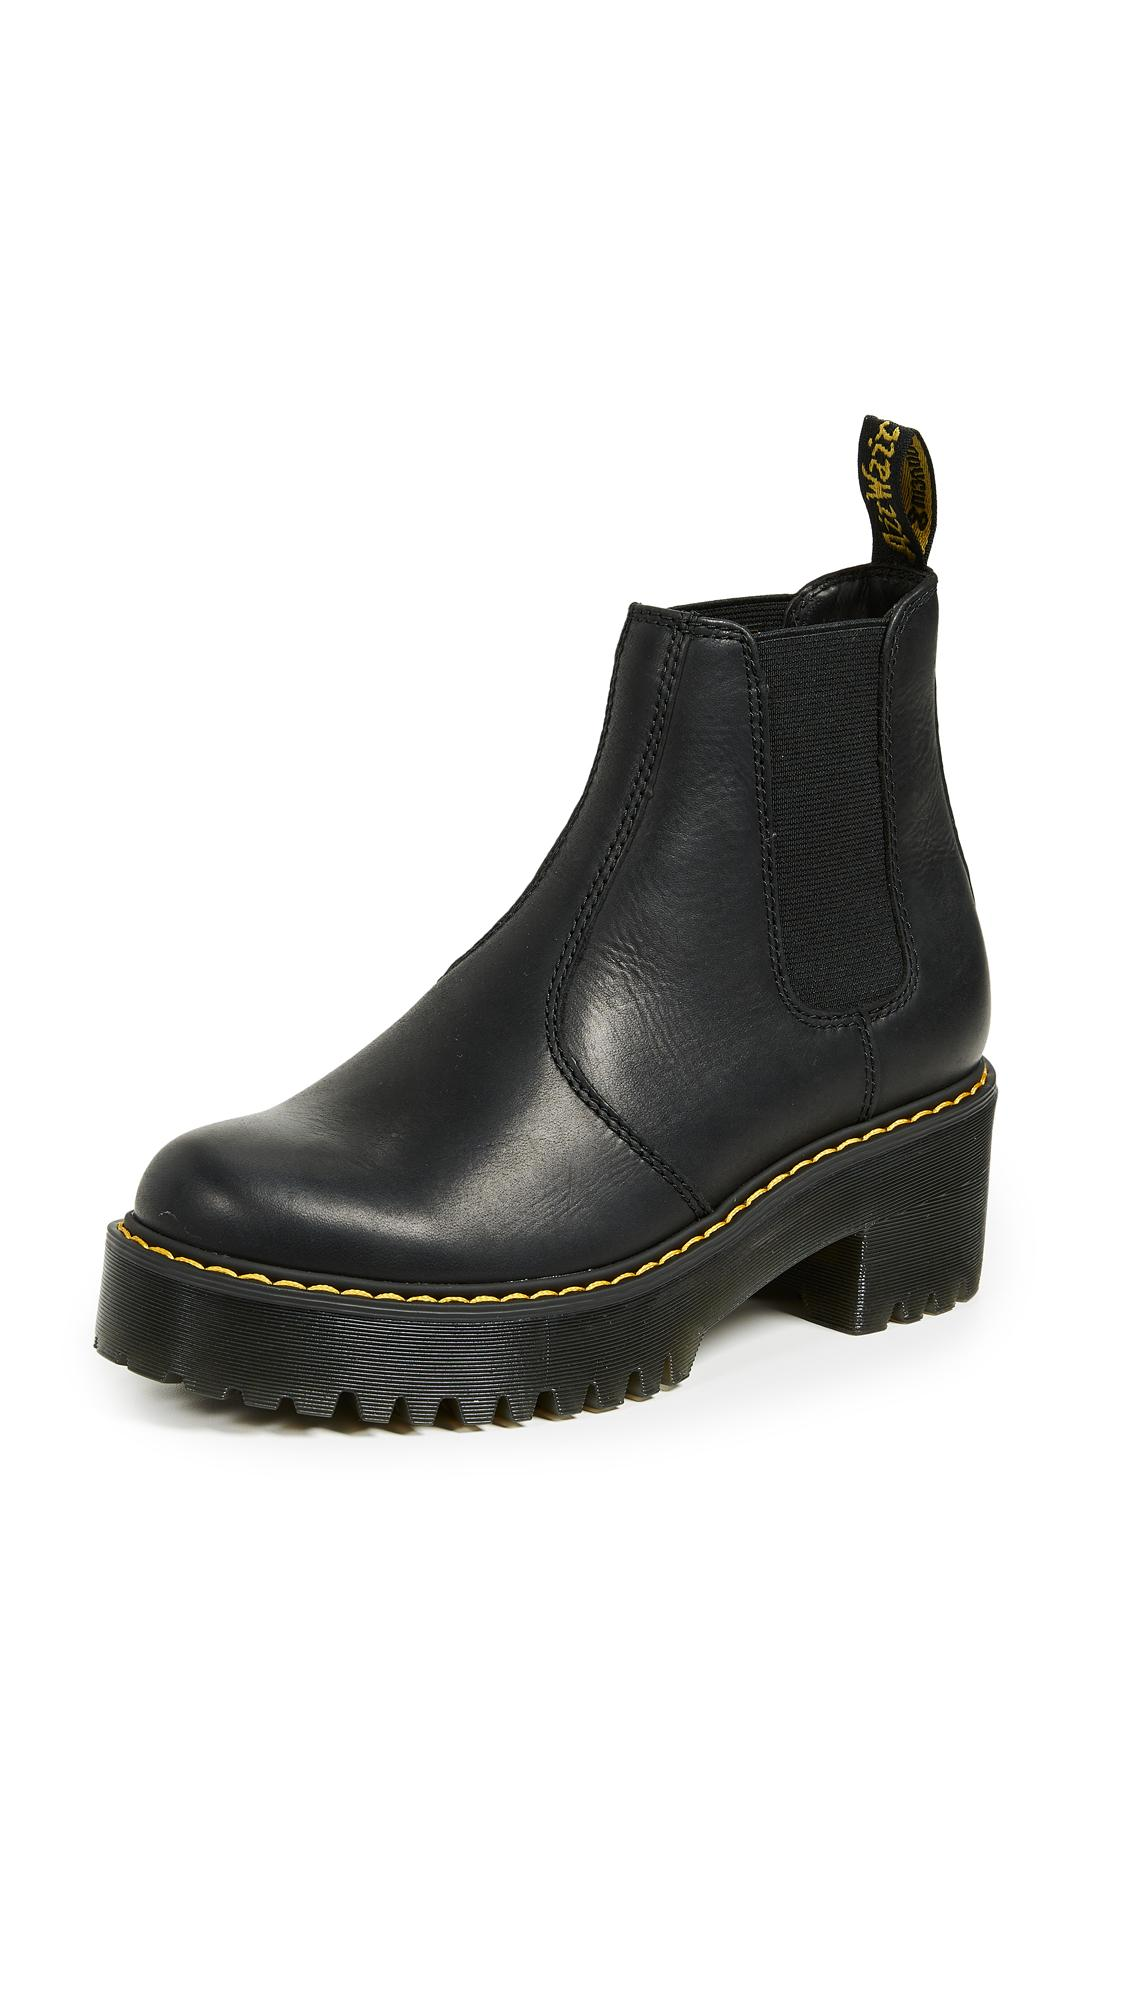 d95906bbdb3 Dr. Martens Rometty Chelsea Boots In Black